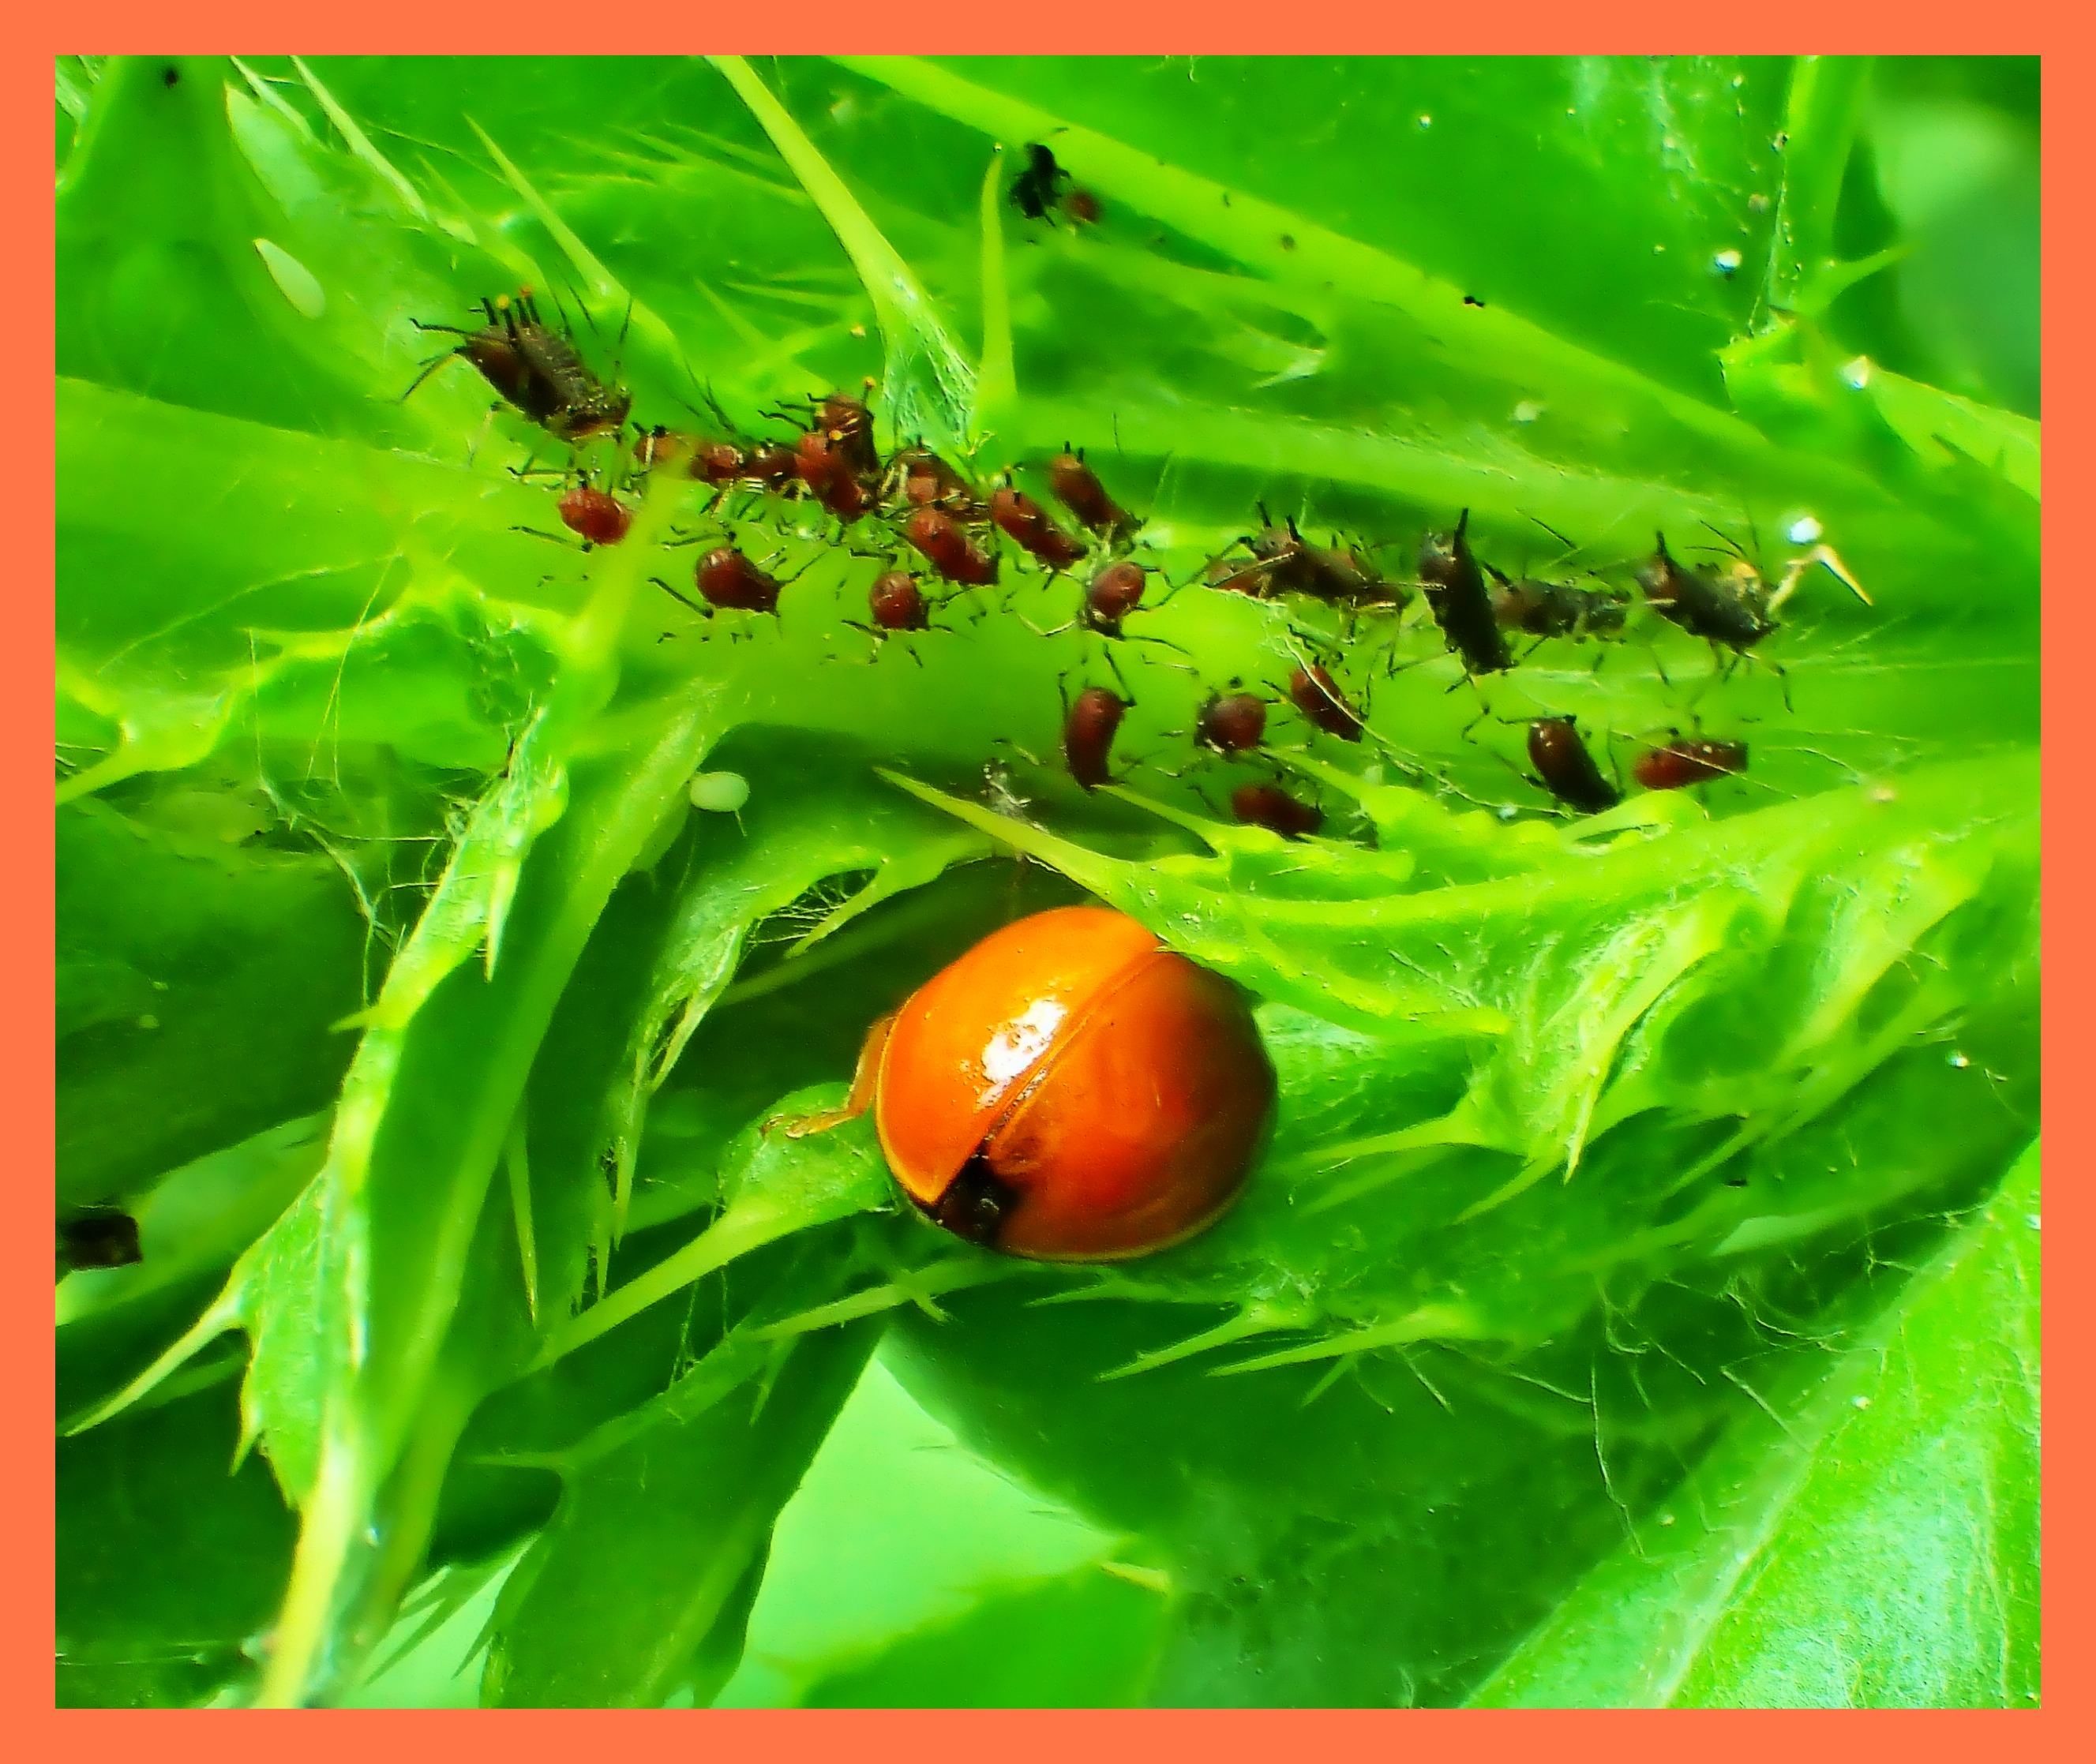 Ladybug and the aphids it eats.  Photo by Thomas Peace c. 2015